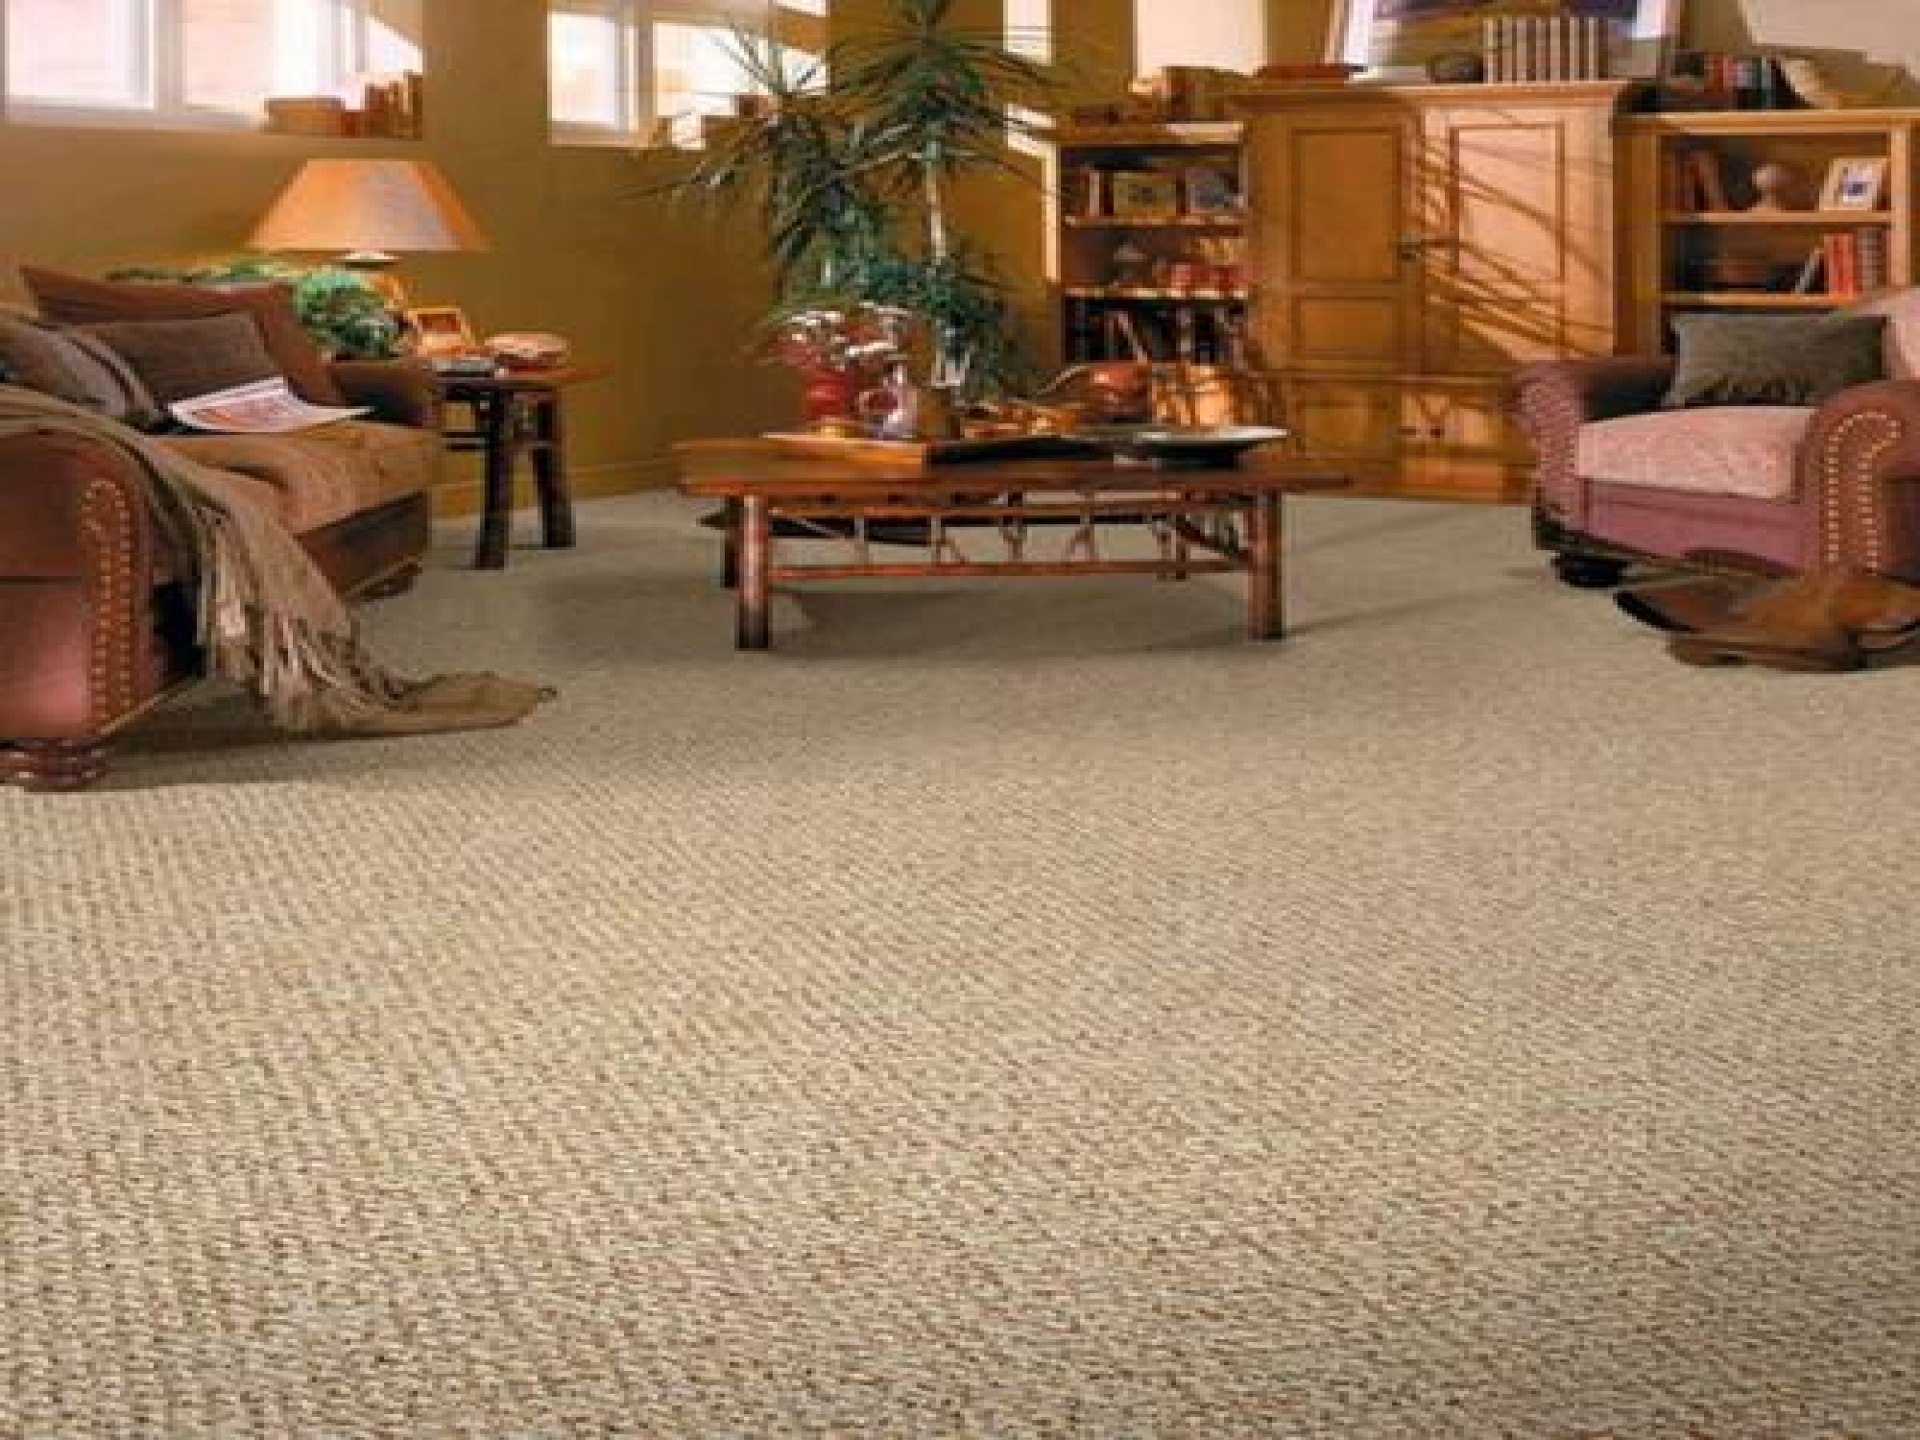 carpet design ideas living room carpet choice for your home - furnitureanddecors.com/decor SWRDZOS